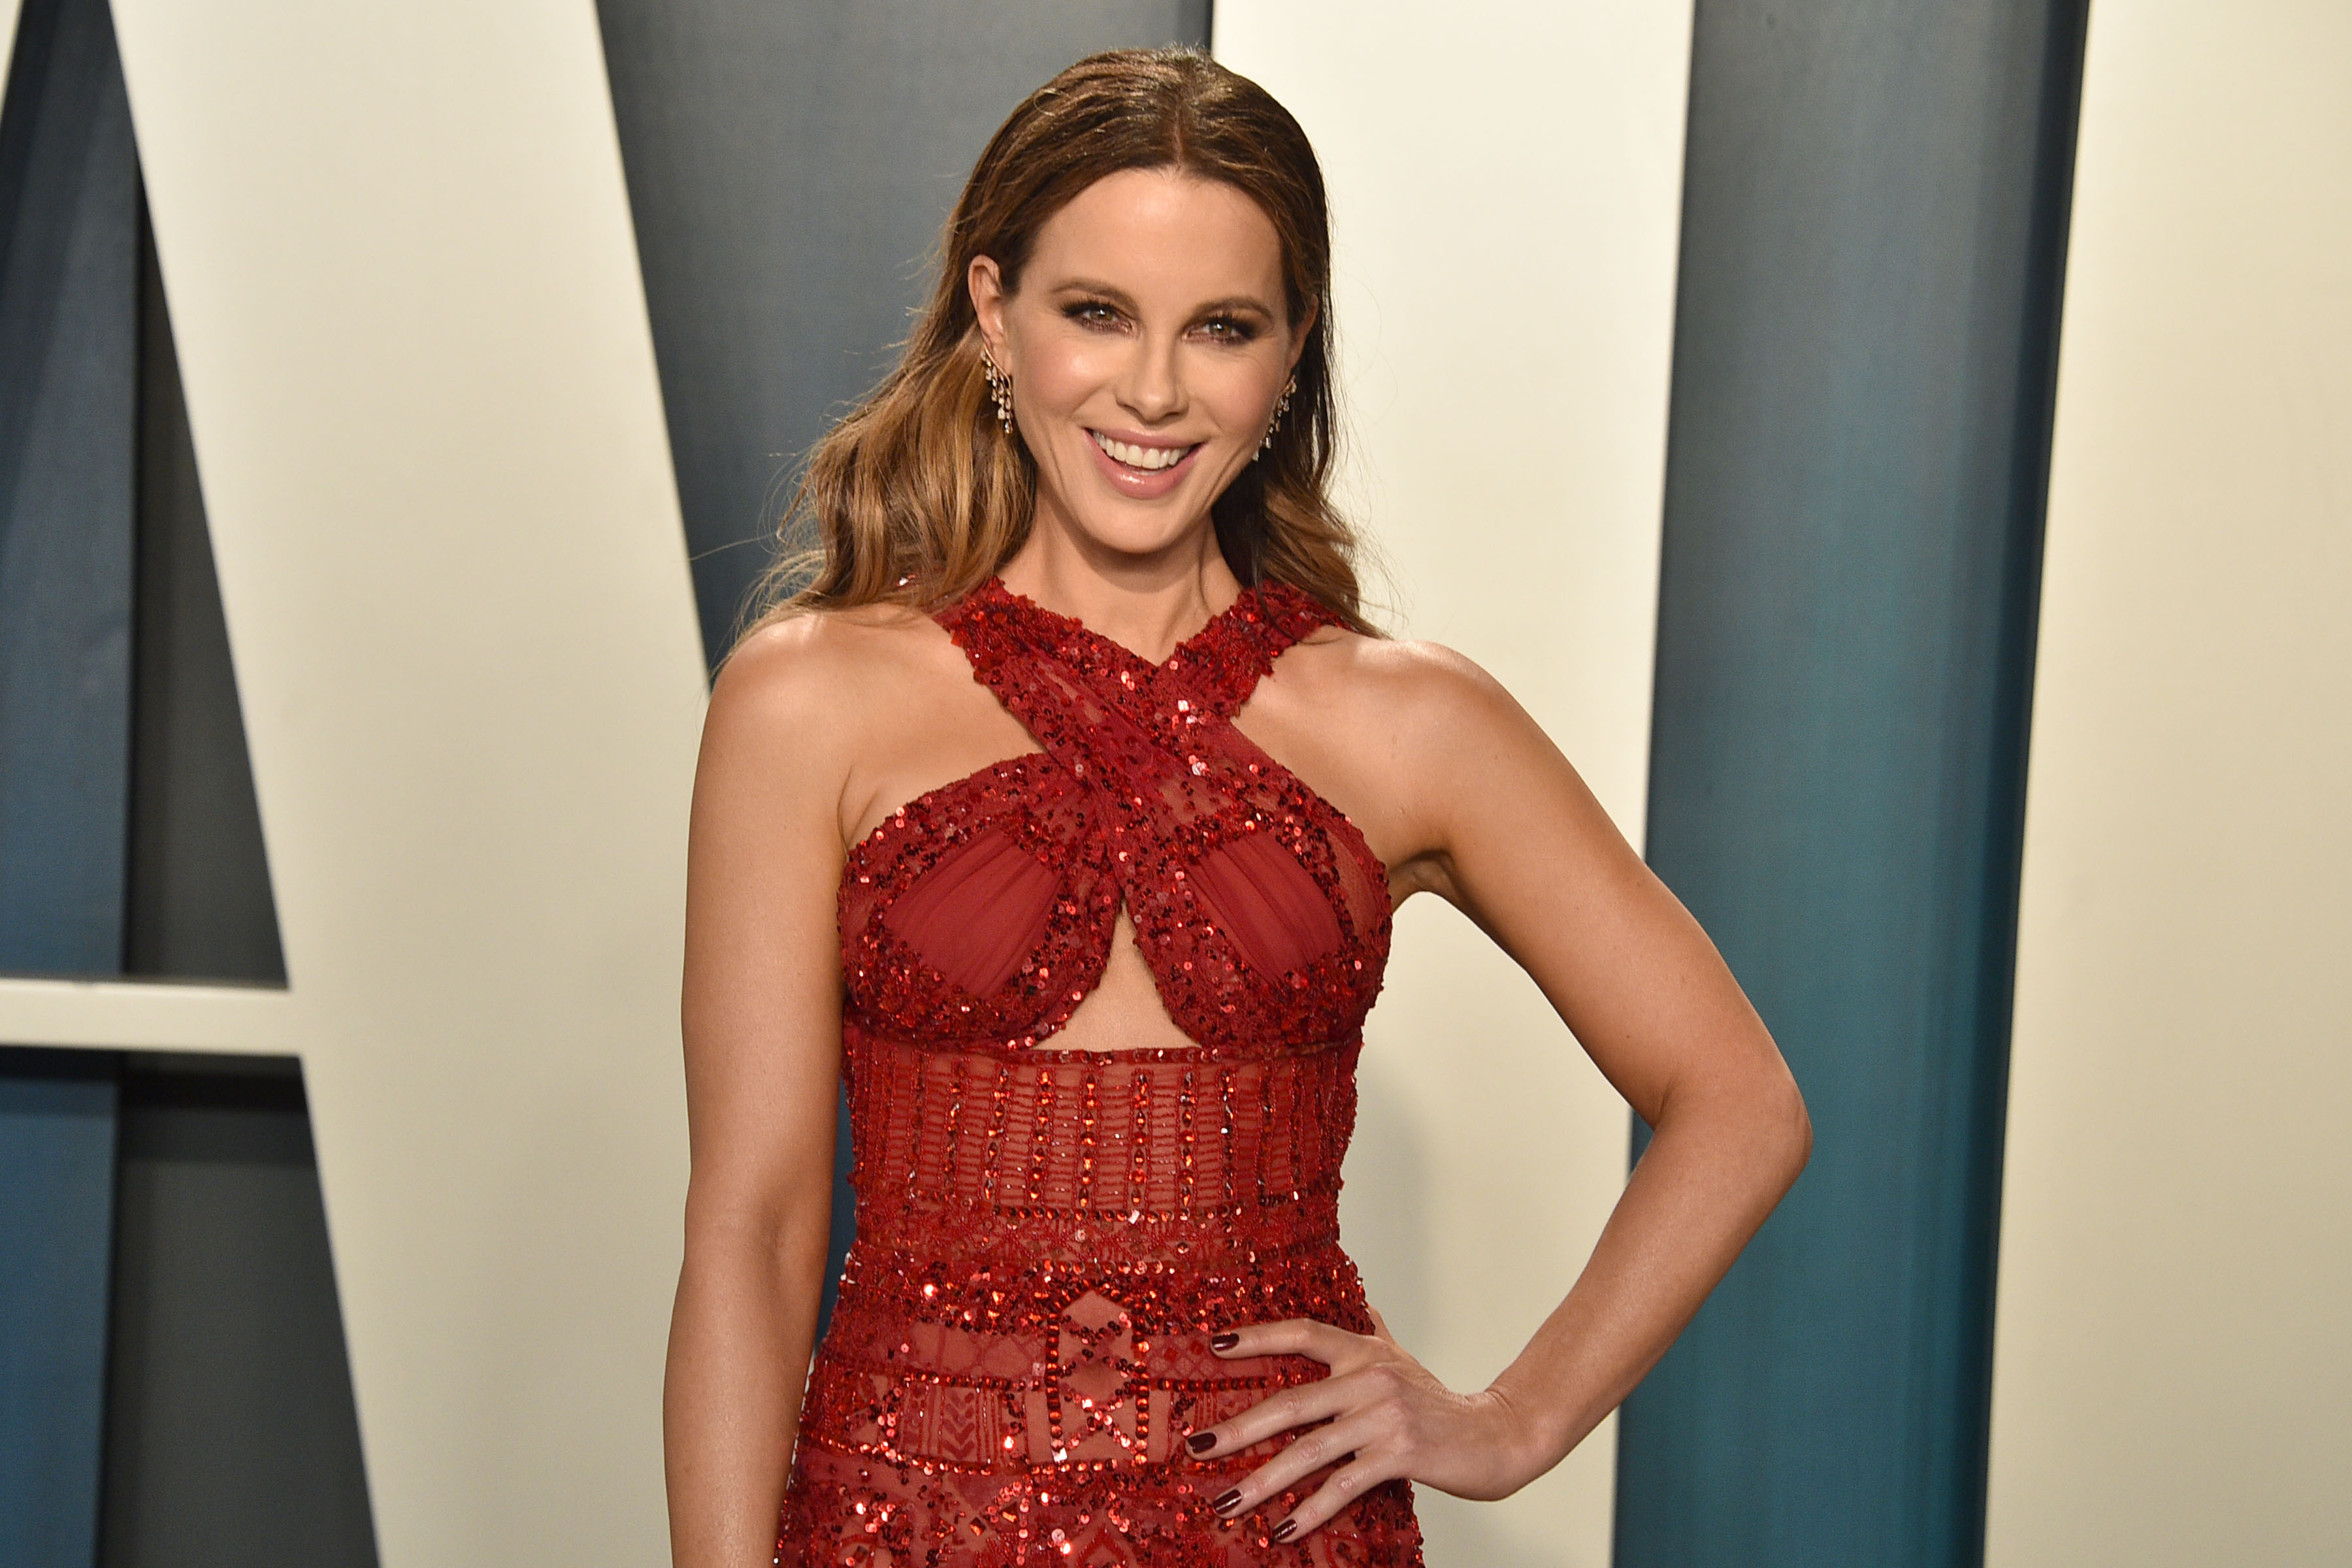 Kate Beckinsale attends the 2020 Vanity Fair Oscar Party at Wallis Annenberg Center for the Performing Arts on February 09, 2020 in Beverly Hills, California. (Photo by David Crotty/Patrick McMullan via Getty Images)